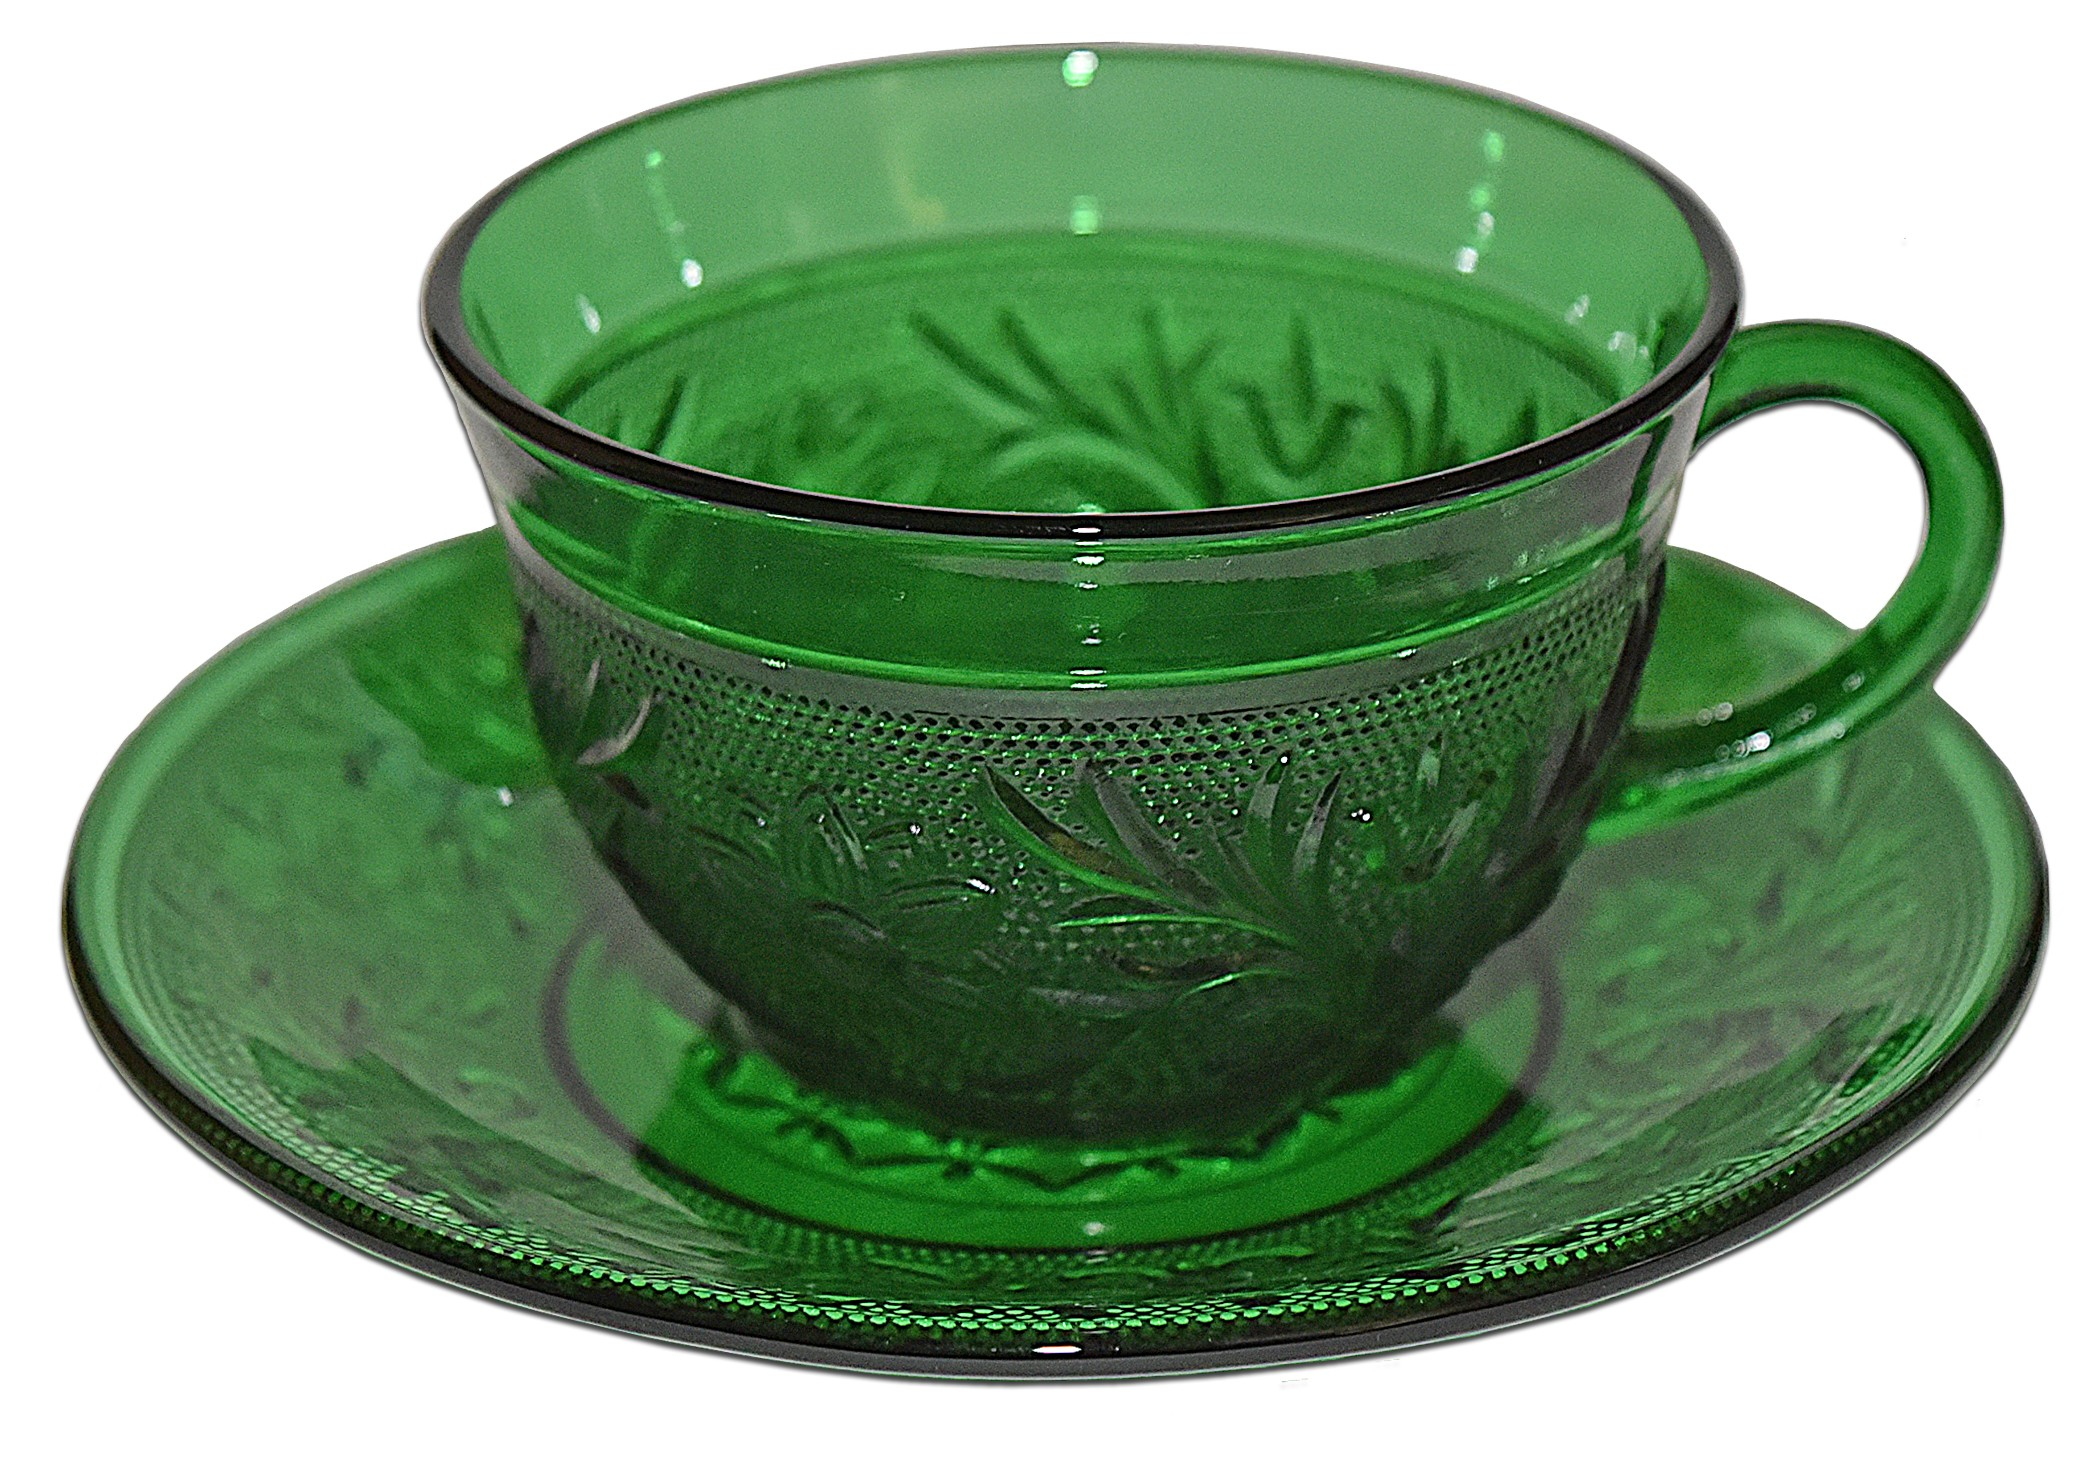 Hocking Sandwich Forest Green Cup and Saucer